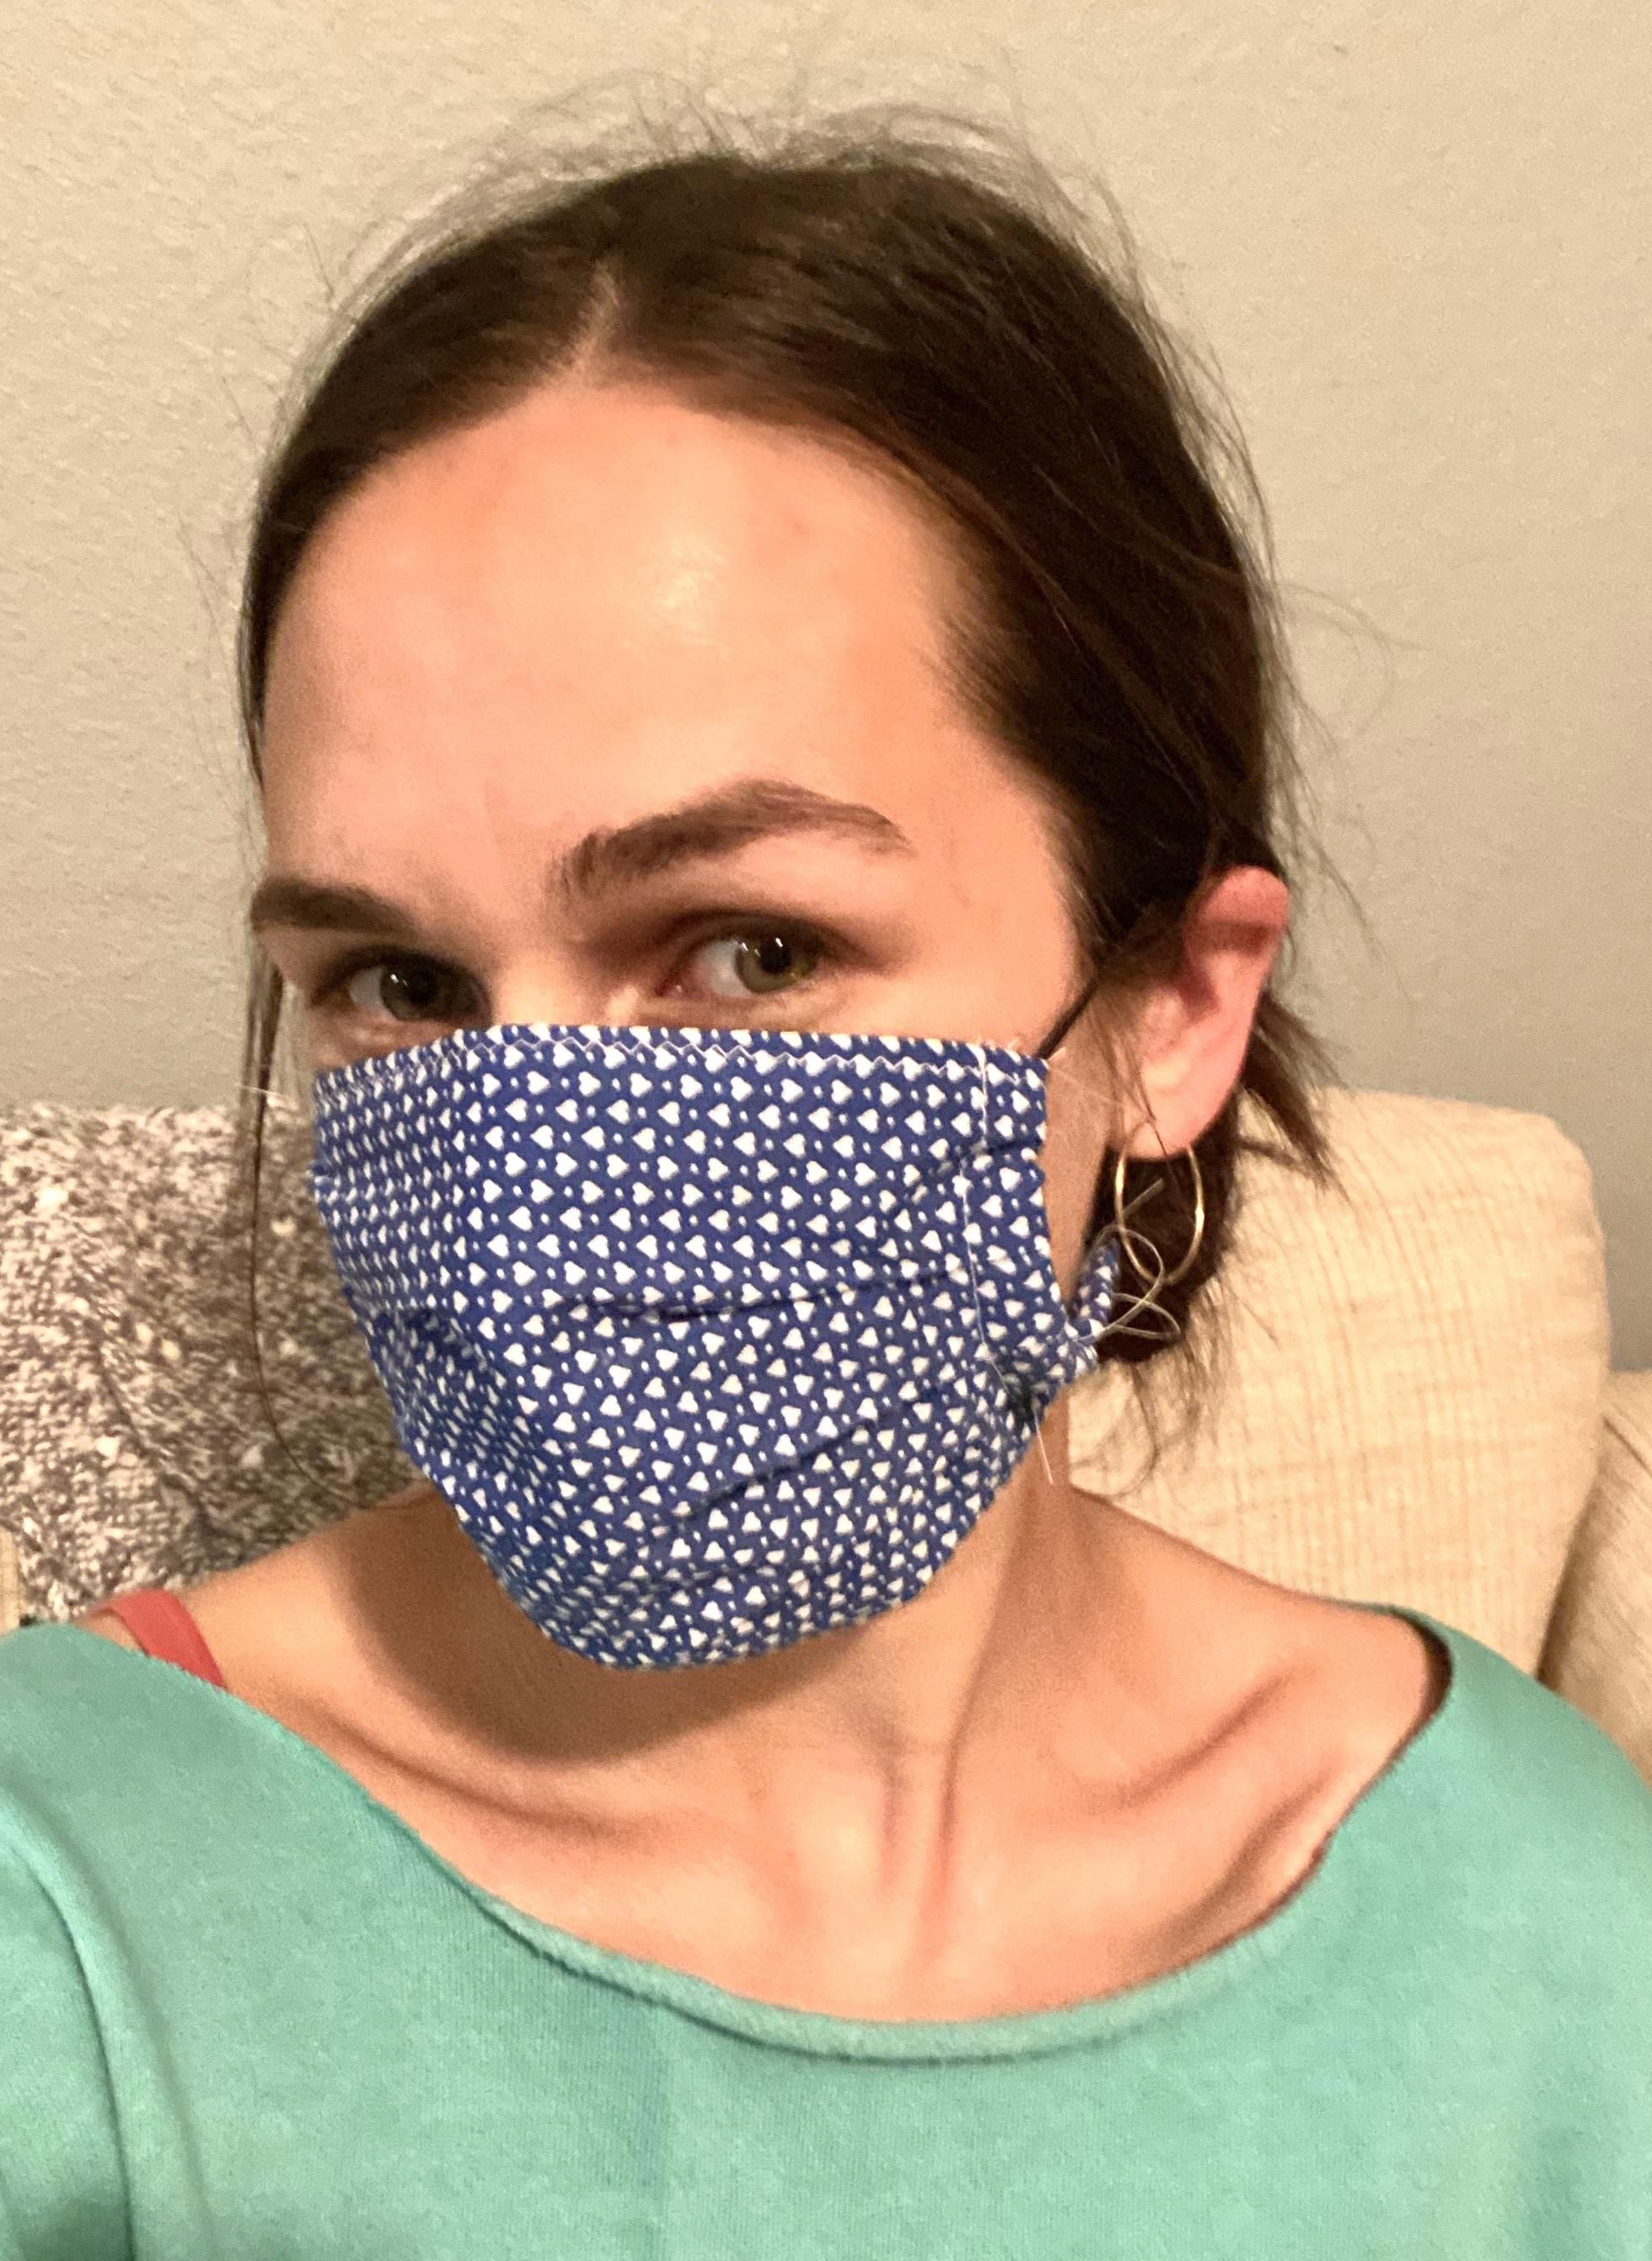 Selfdrafted two layer cotton face mask sewing crafts